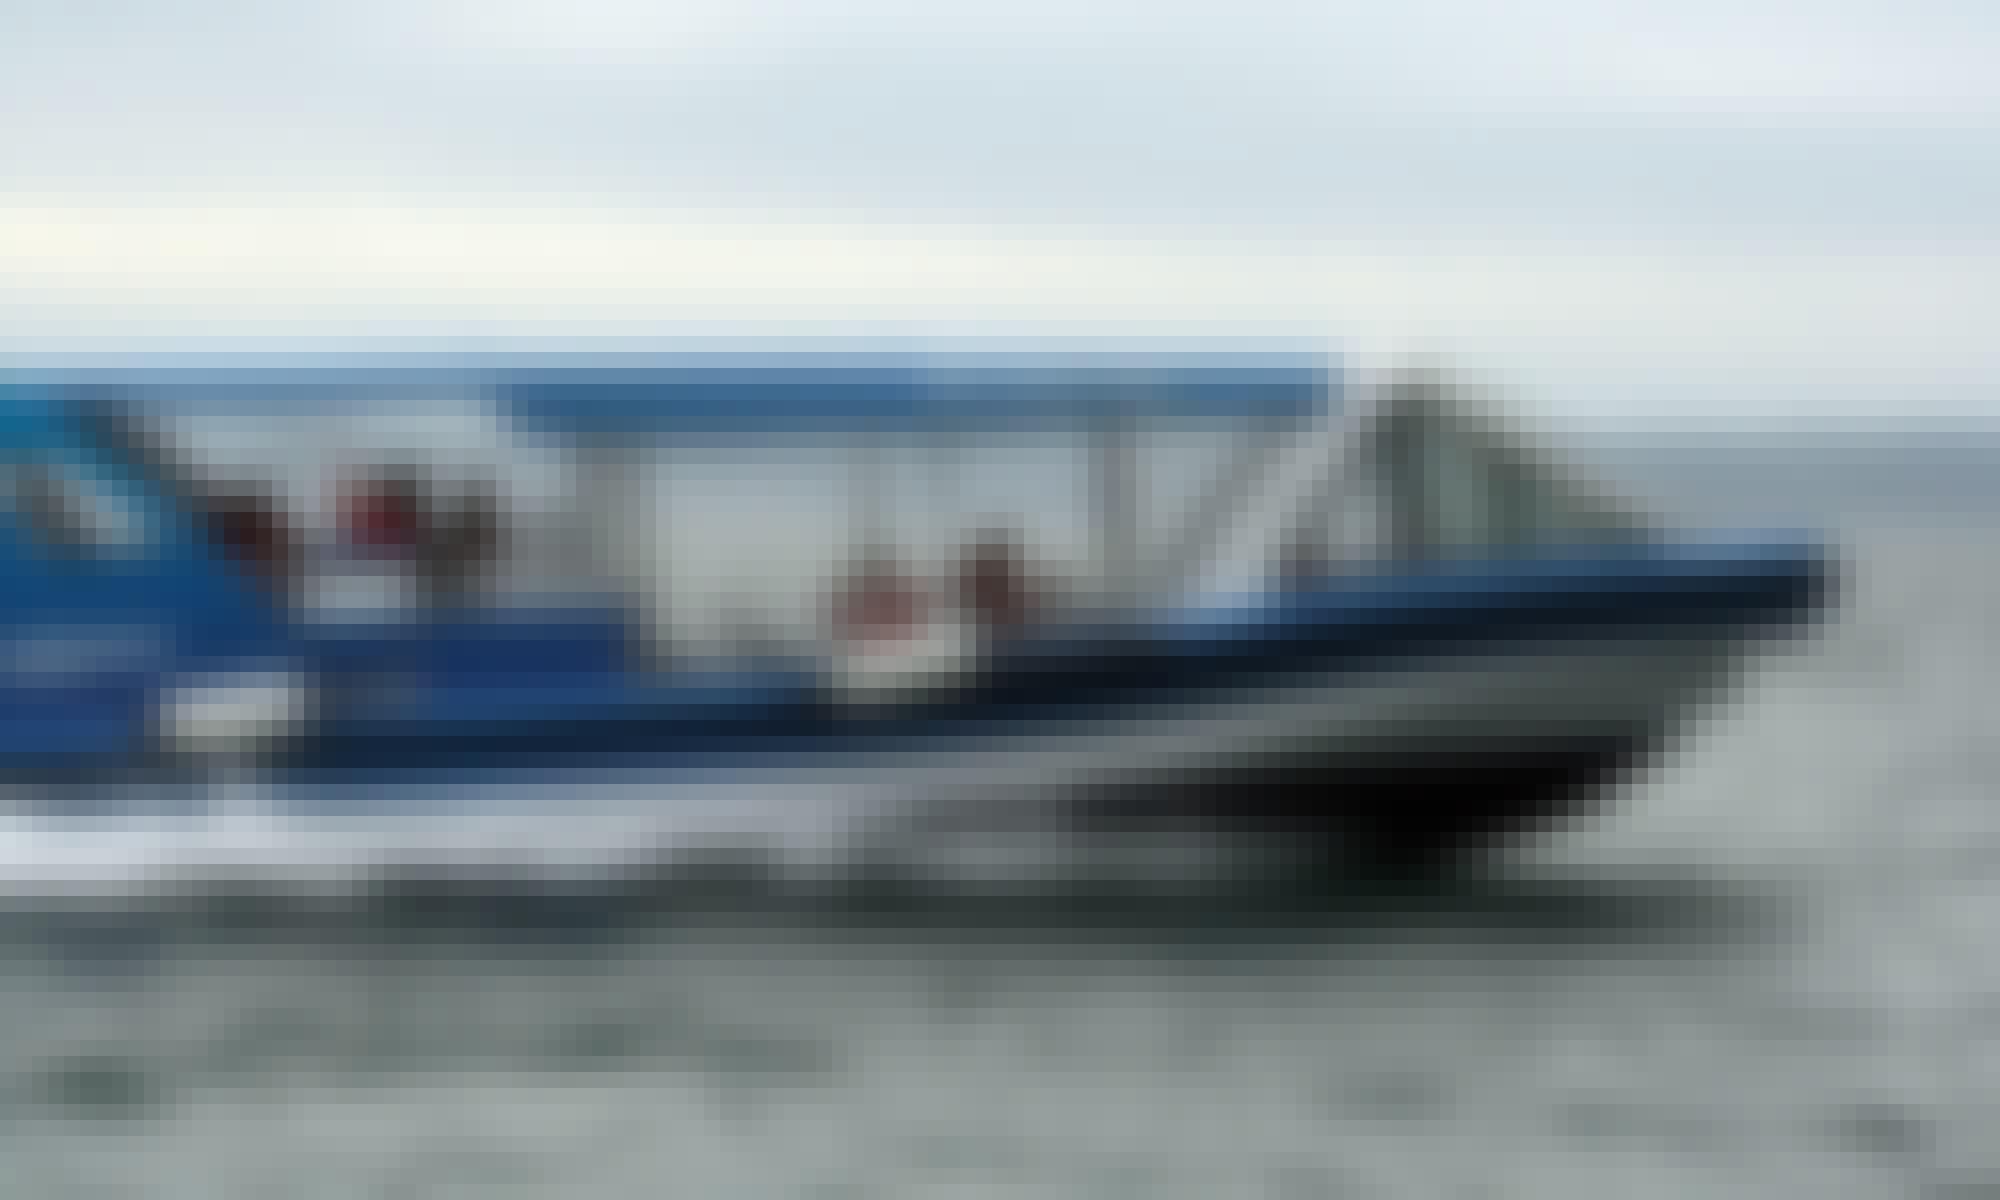 Sea Sprinter Boat Tour in Cowes